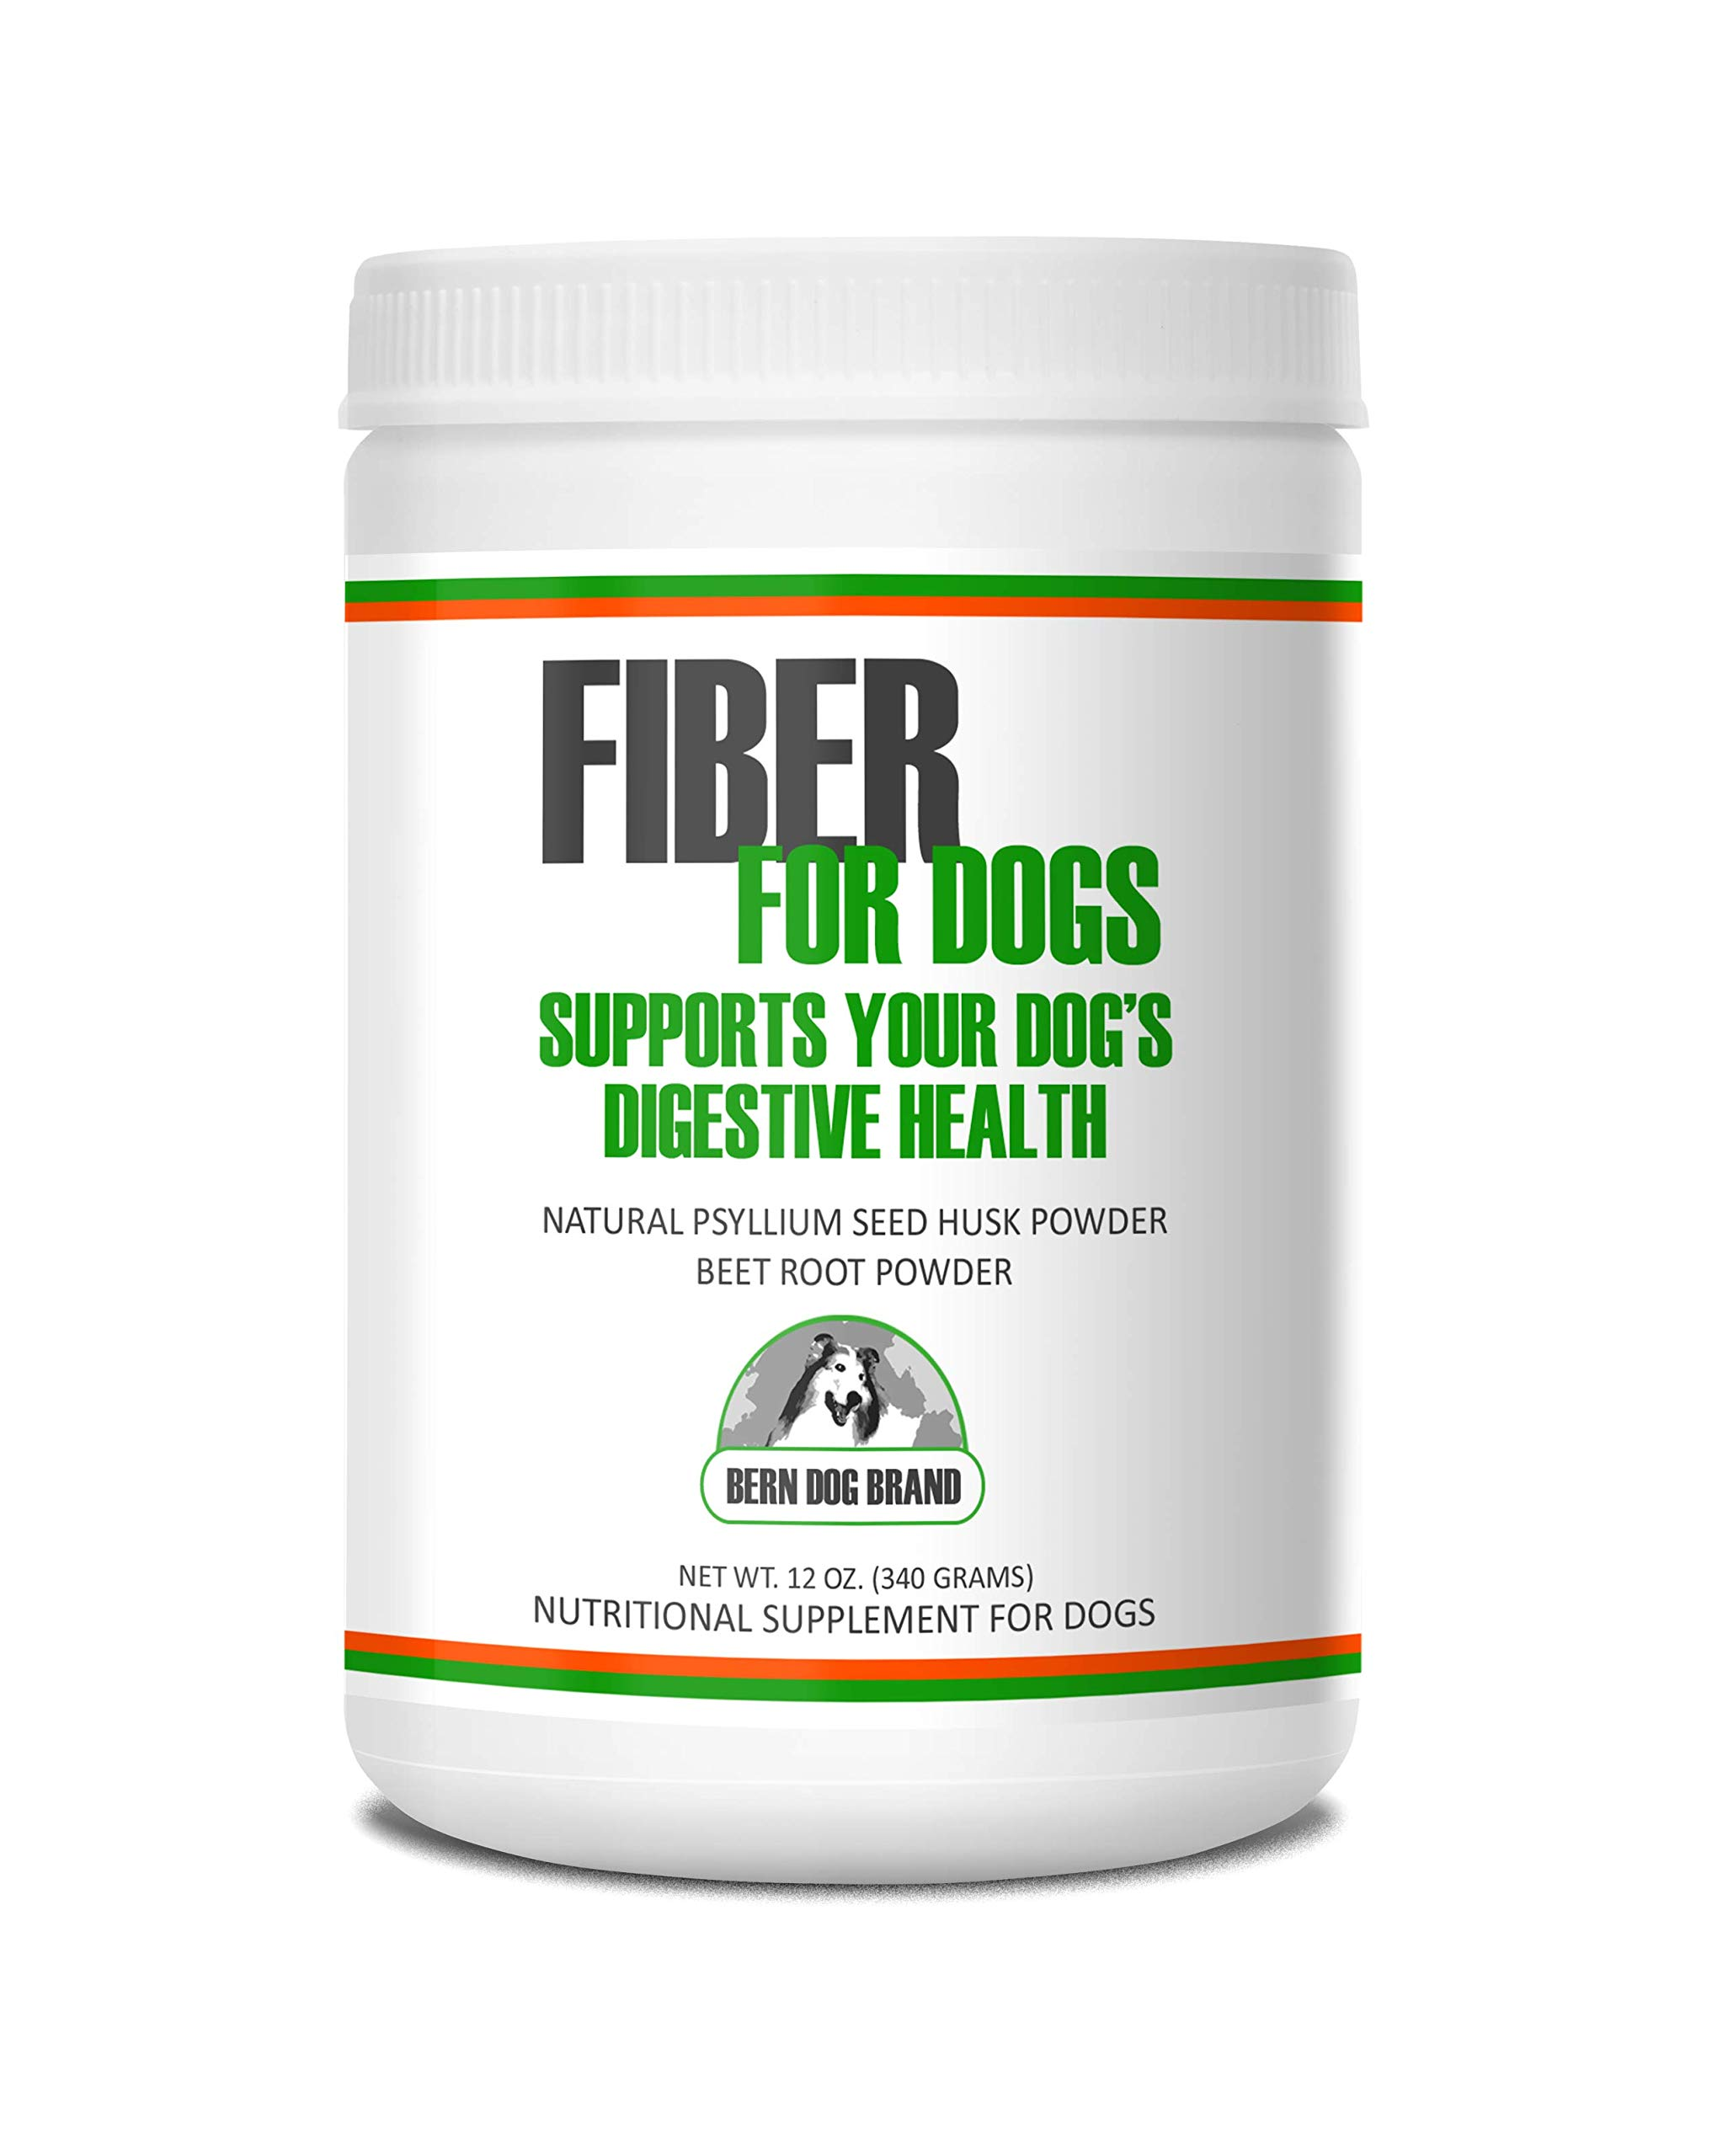 Fiber for Dogs psyllium seed husk powder & dehydrated beet root powder aids a number of intestinal disorders in dogs including diarrhea, constipation & anal gland issues. Available in 6 and 12 oz. by Bern Dog Brand